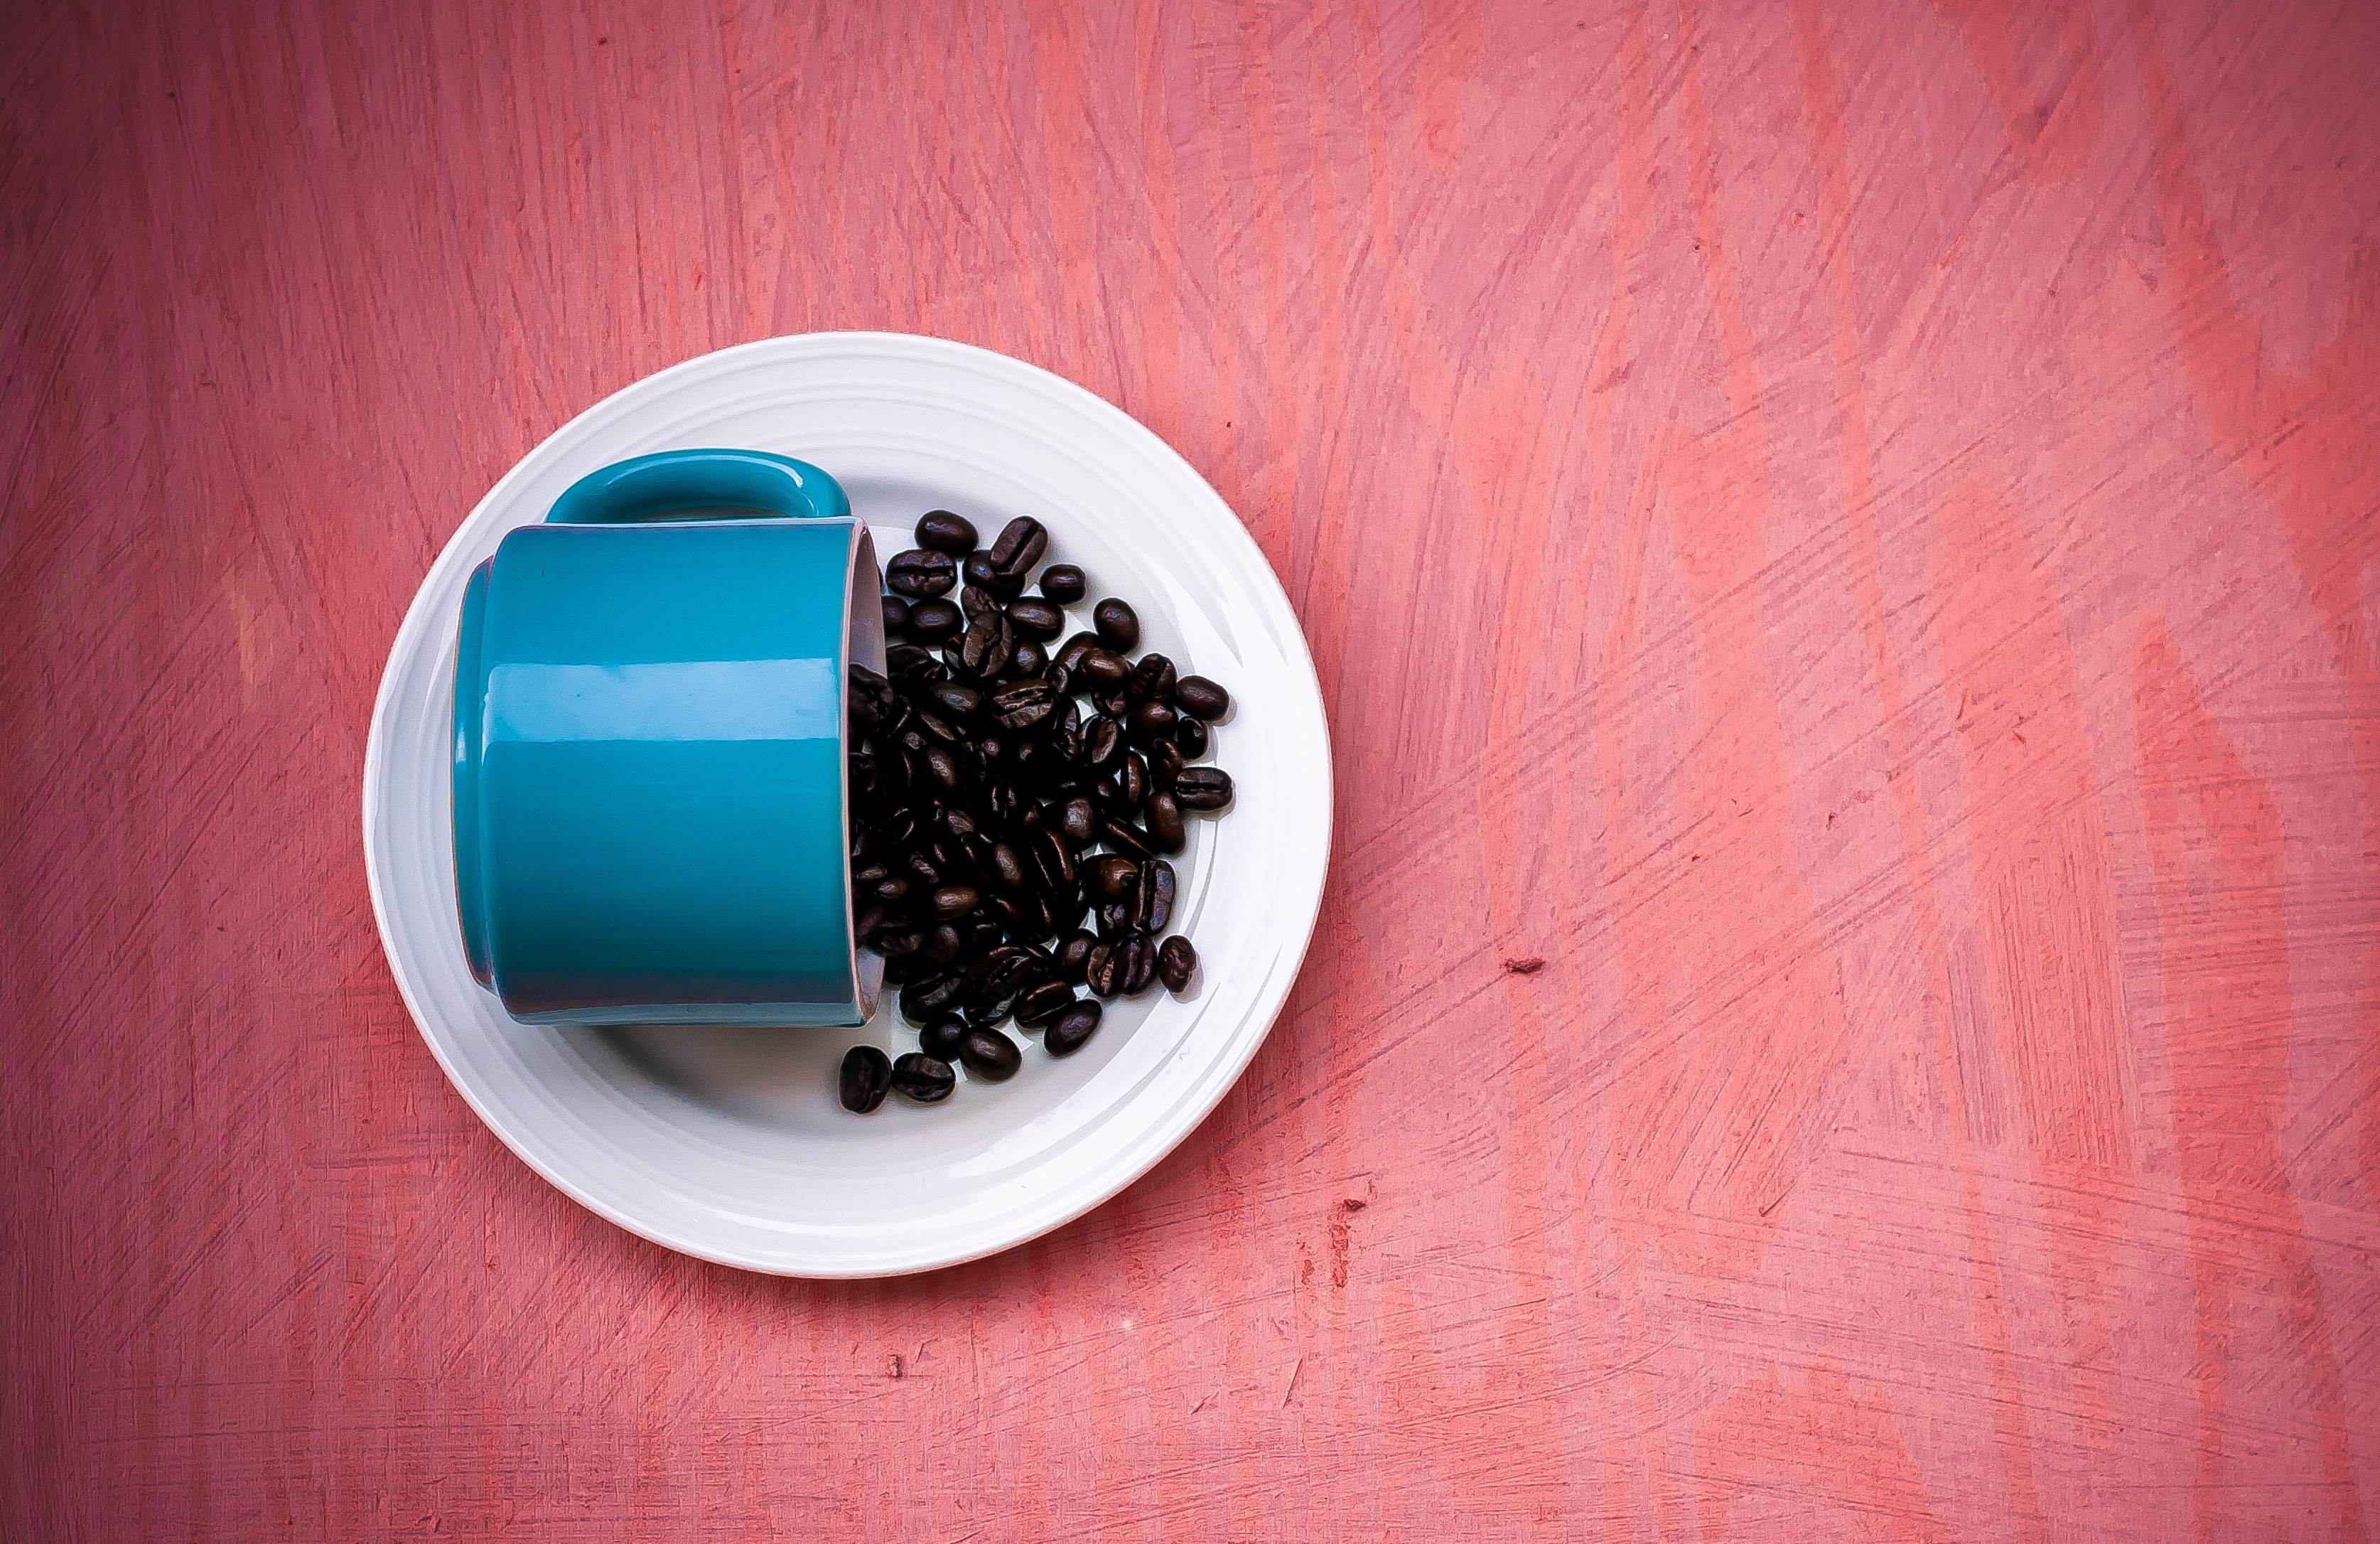 Blue ceramic tea cup with beans on a white plate